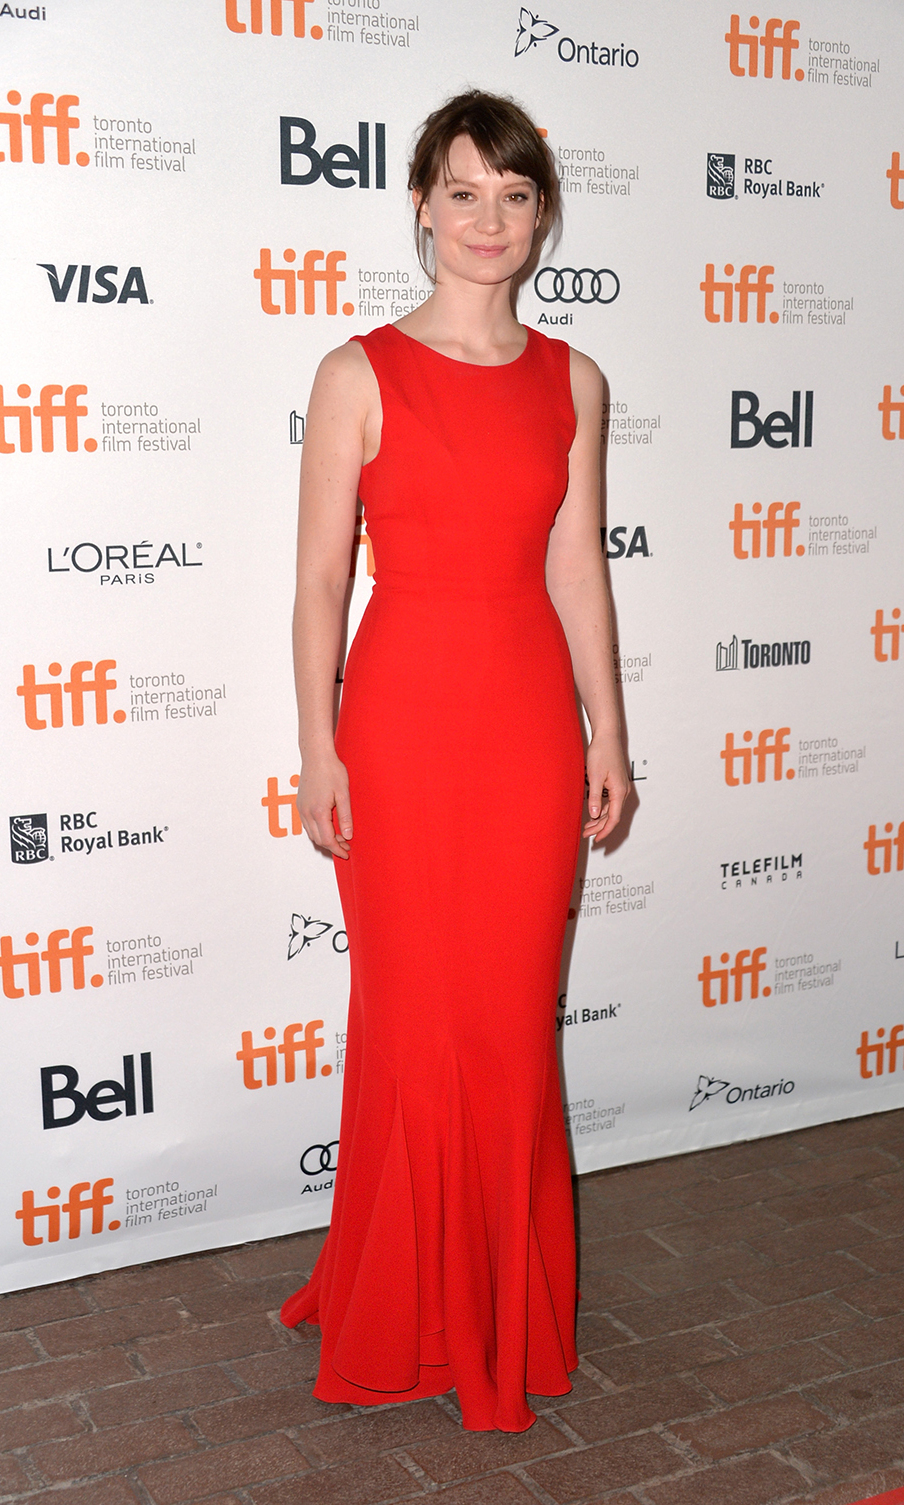 Actress Mia Wasikowska at the Only Lovers Left Alive premiere at the 2013 Toronto International Film Festival.